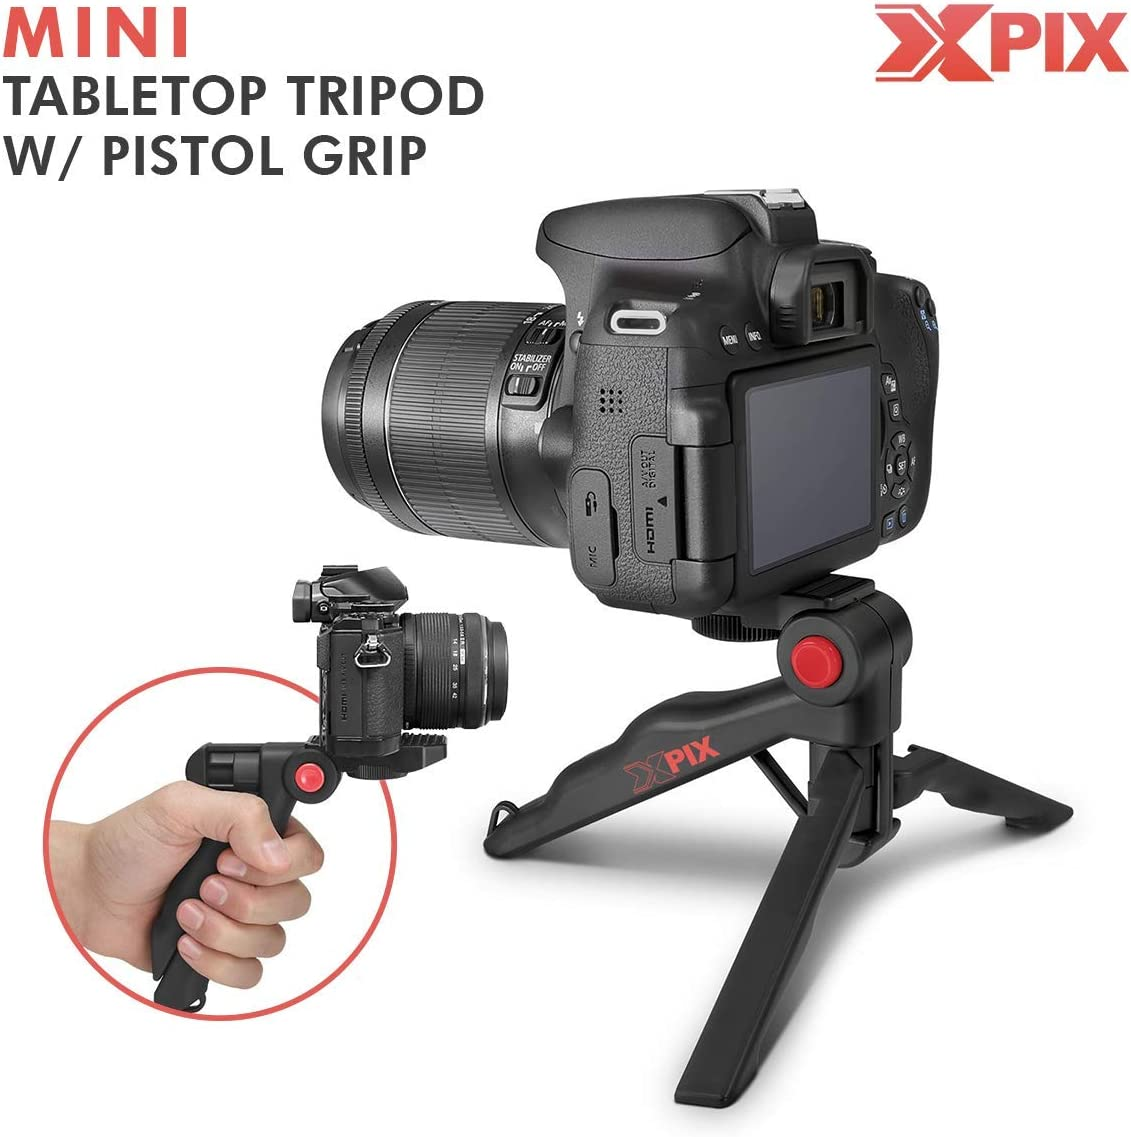 Riptide + FLT-STP Floating Foam Strap Sandisk/16GB Micro SD Card Xpix Table Top//Hand Grip Tripod /& Xpix Deluxe Cleaning Accessories Canon Ivy REC Outdoor Digital Camera